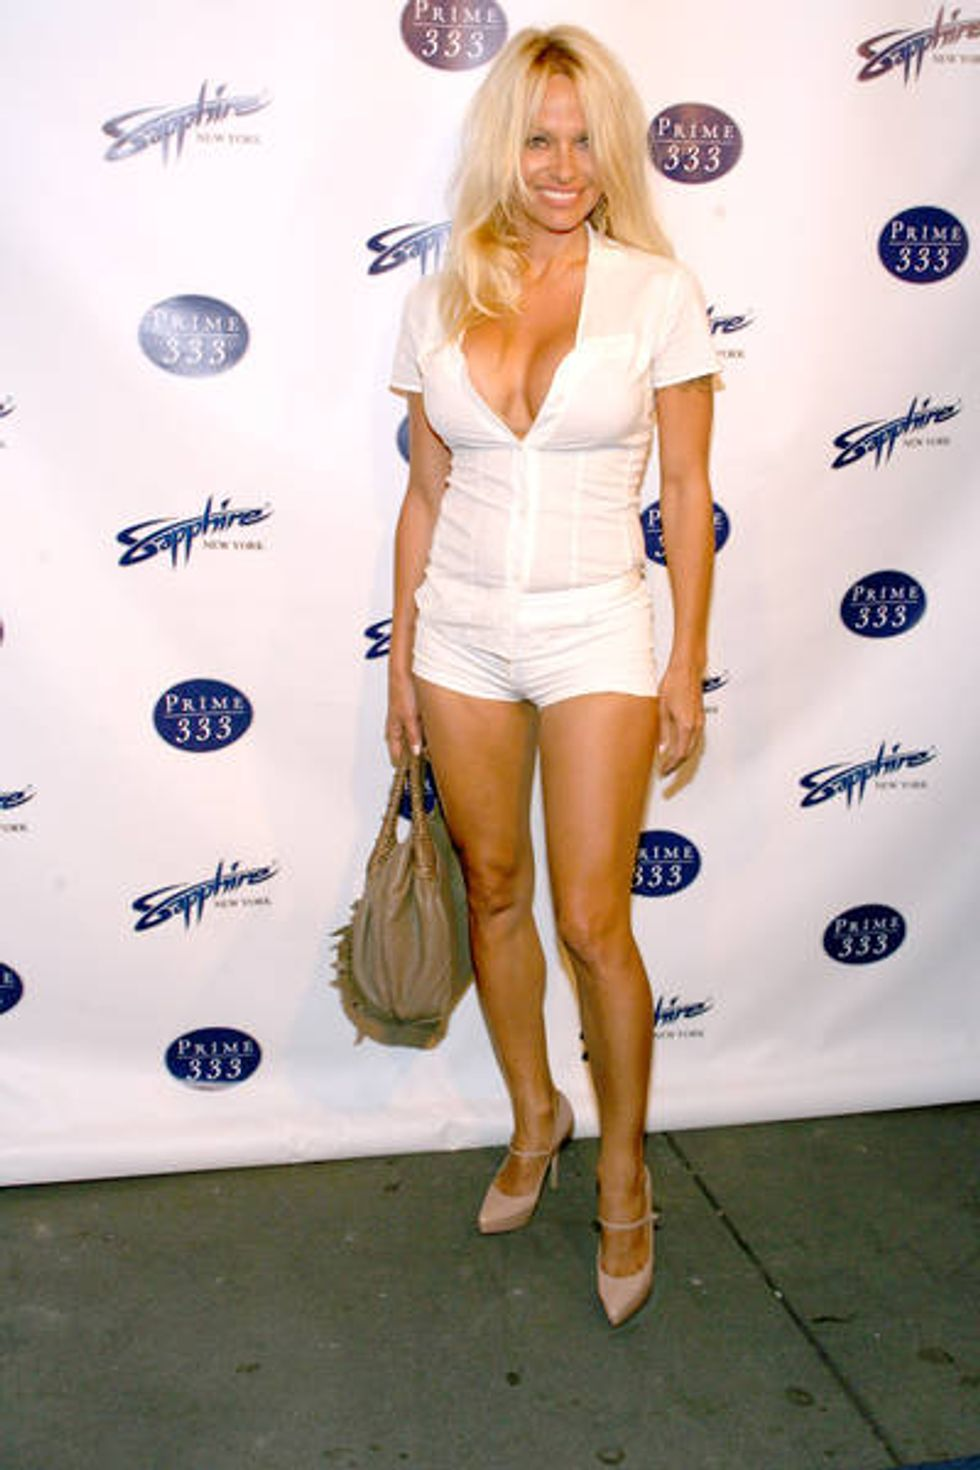 """Pamela Anderson Attends Sapphire Strip Club Opening, Even Though It's """"Not For Vegans"""""""